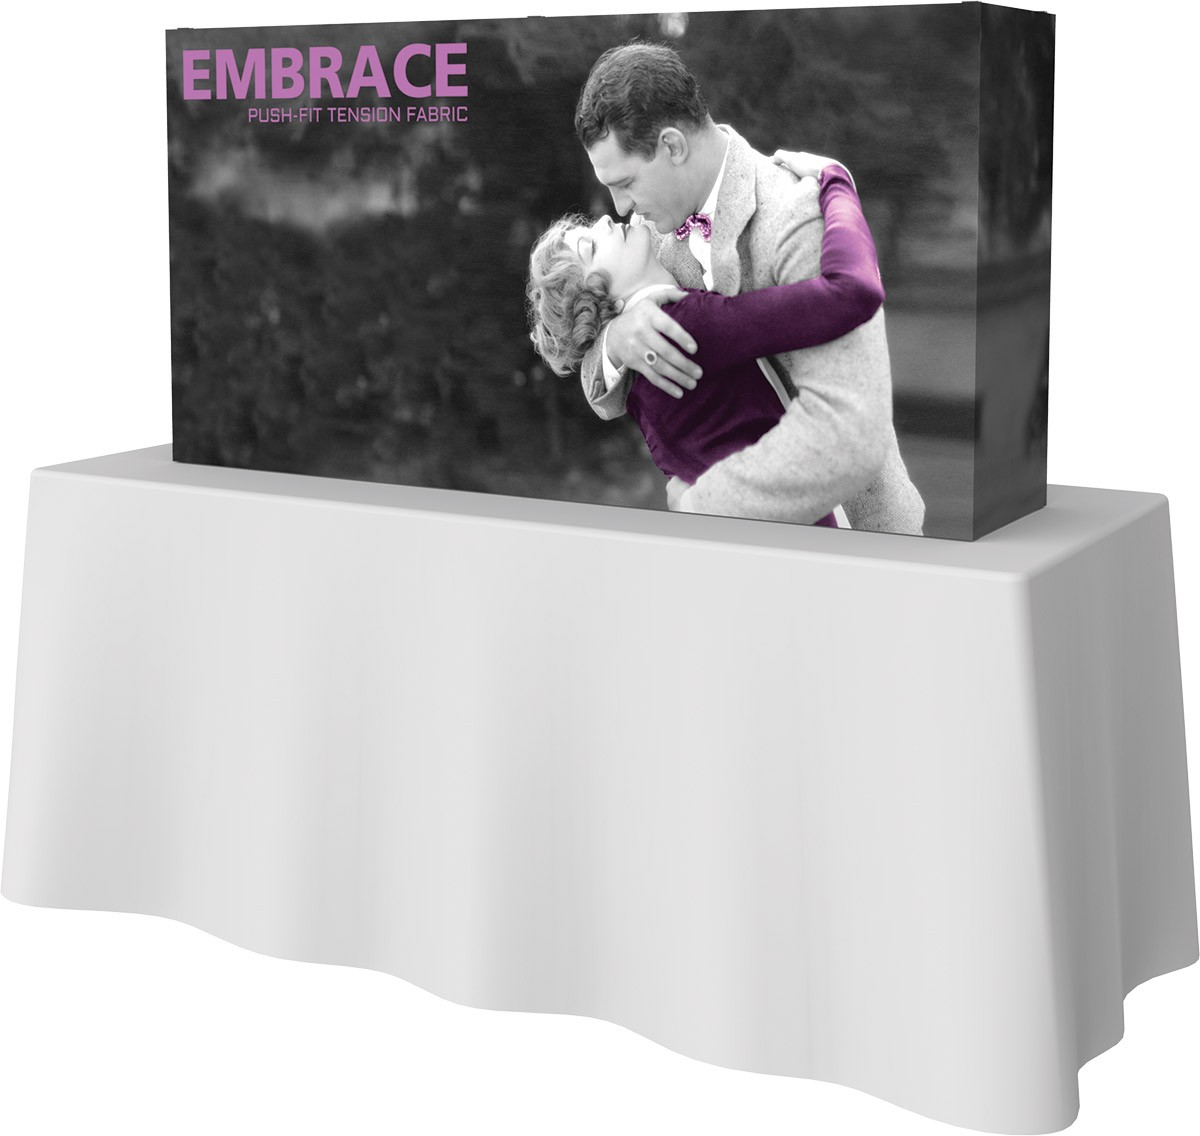 Embrace 5' x 2.5' Table Top Display